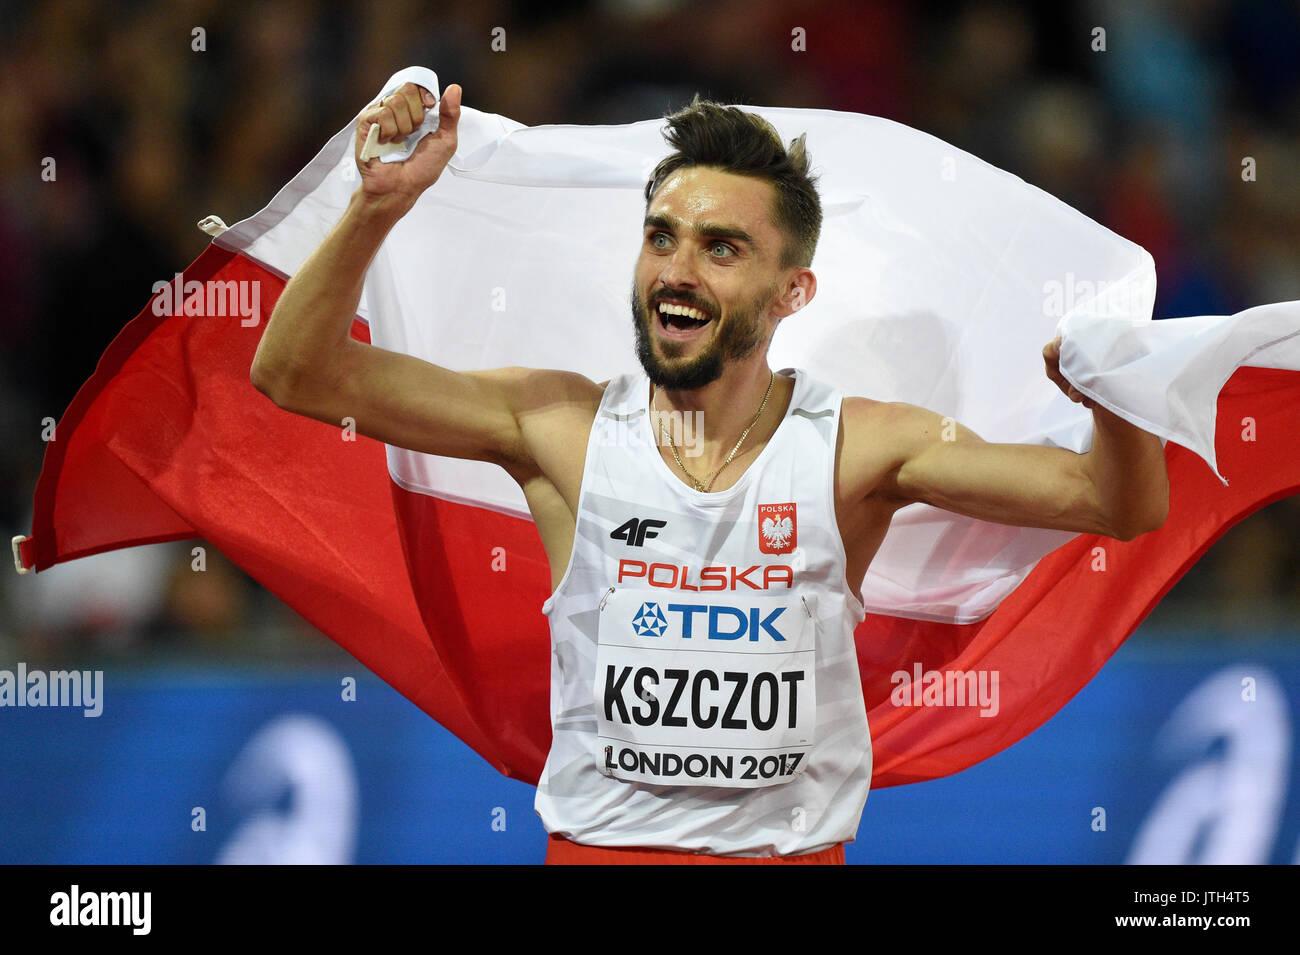 Polish athlete Adam Kszczot reacts after winning silver in the men's 800 metre running event at the IAAF London 2017 World Athletics Championships in London, United Kingdom, 8 August 2017. Photo: Bernd Thissen/dpa - Stock Image